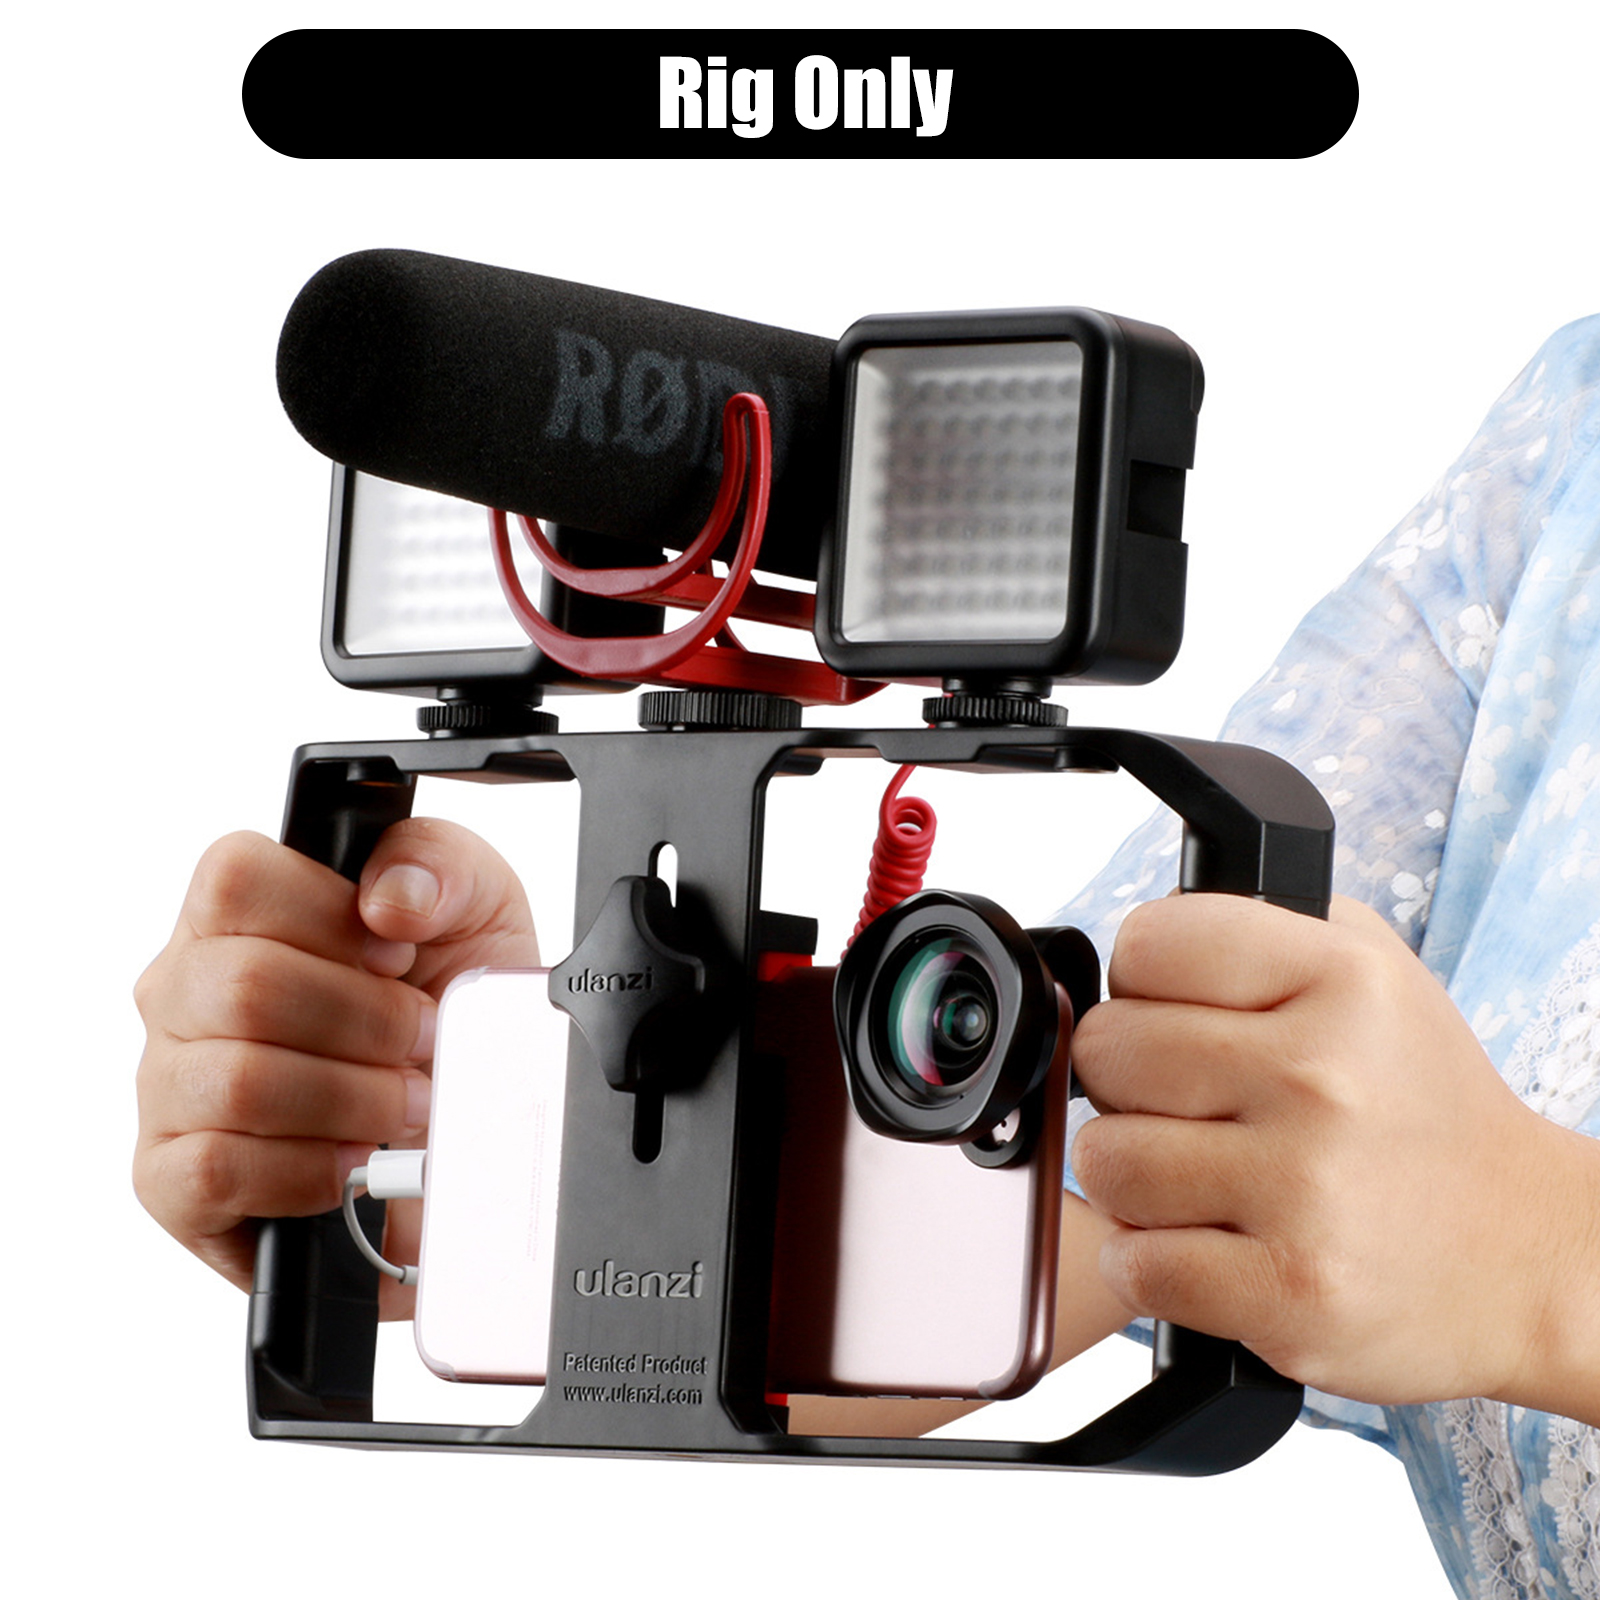 video stabilizer rig case smartphone filmmaking recording